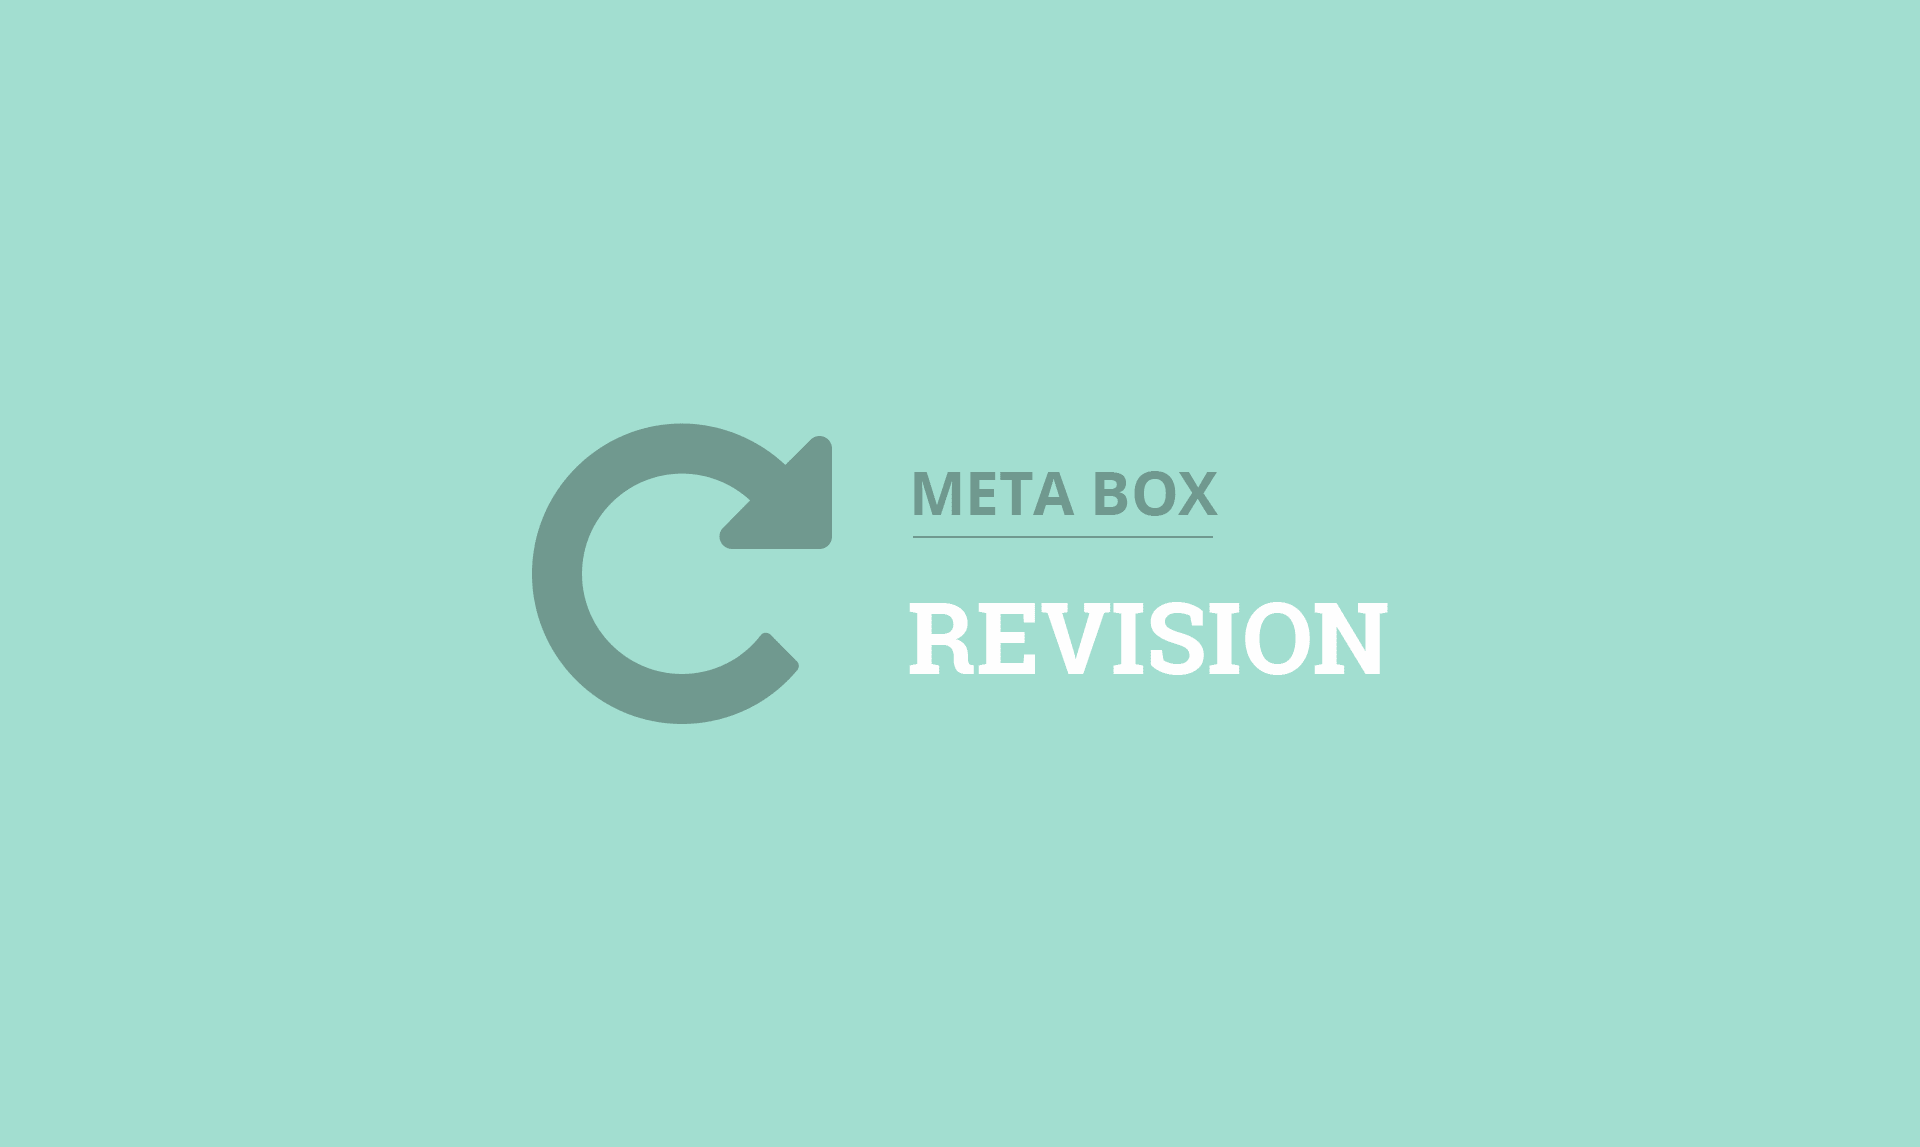 MB Revision